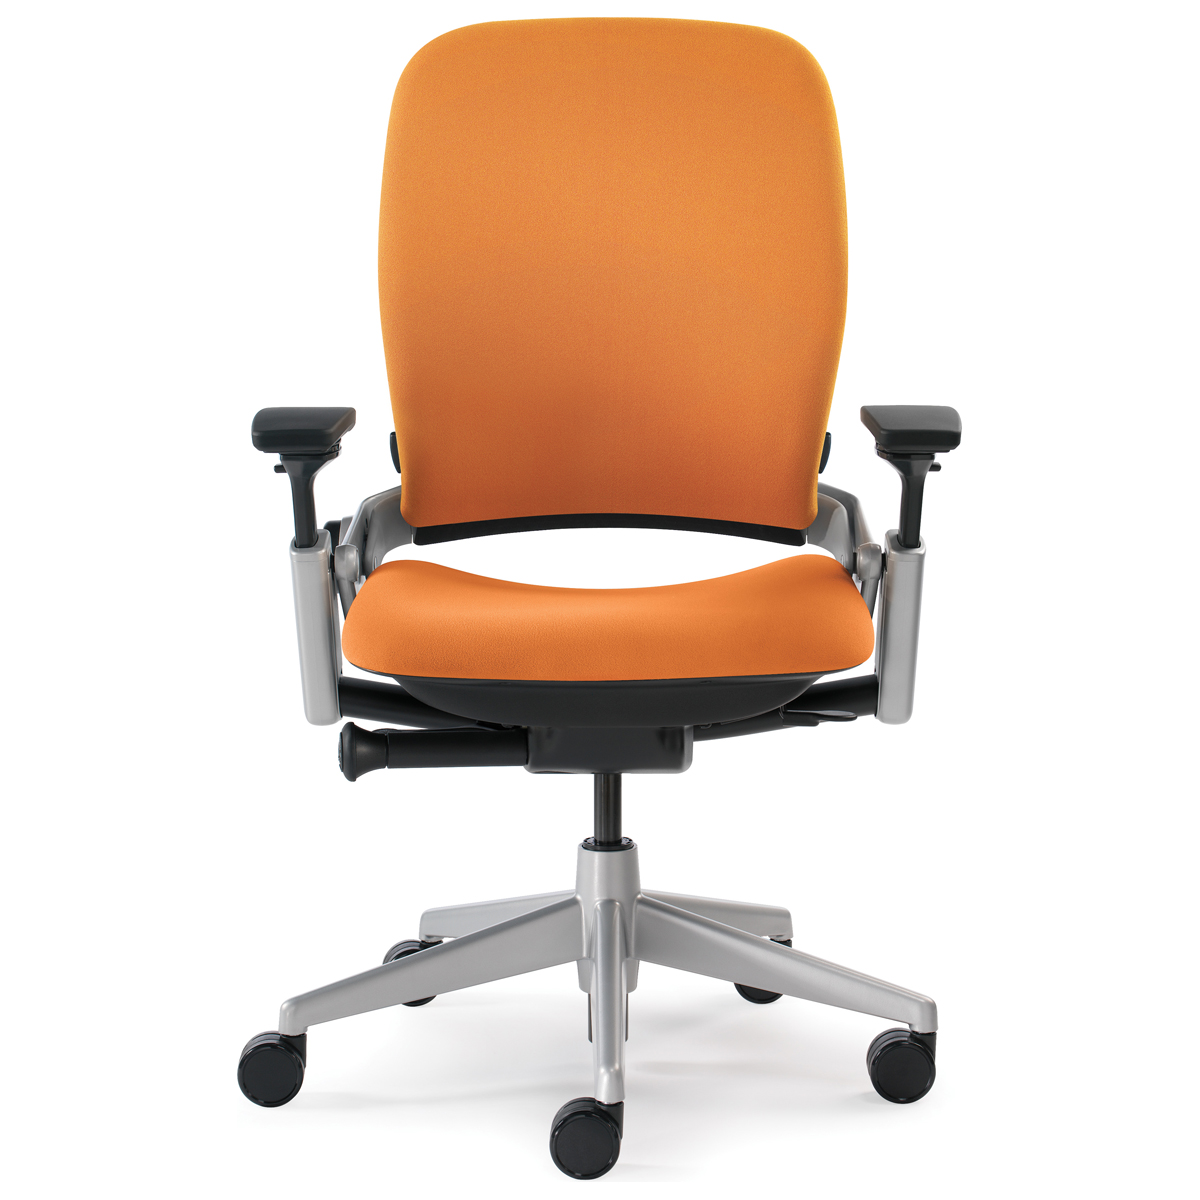 download free leap chair by steelcase manual software